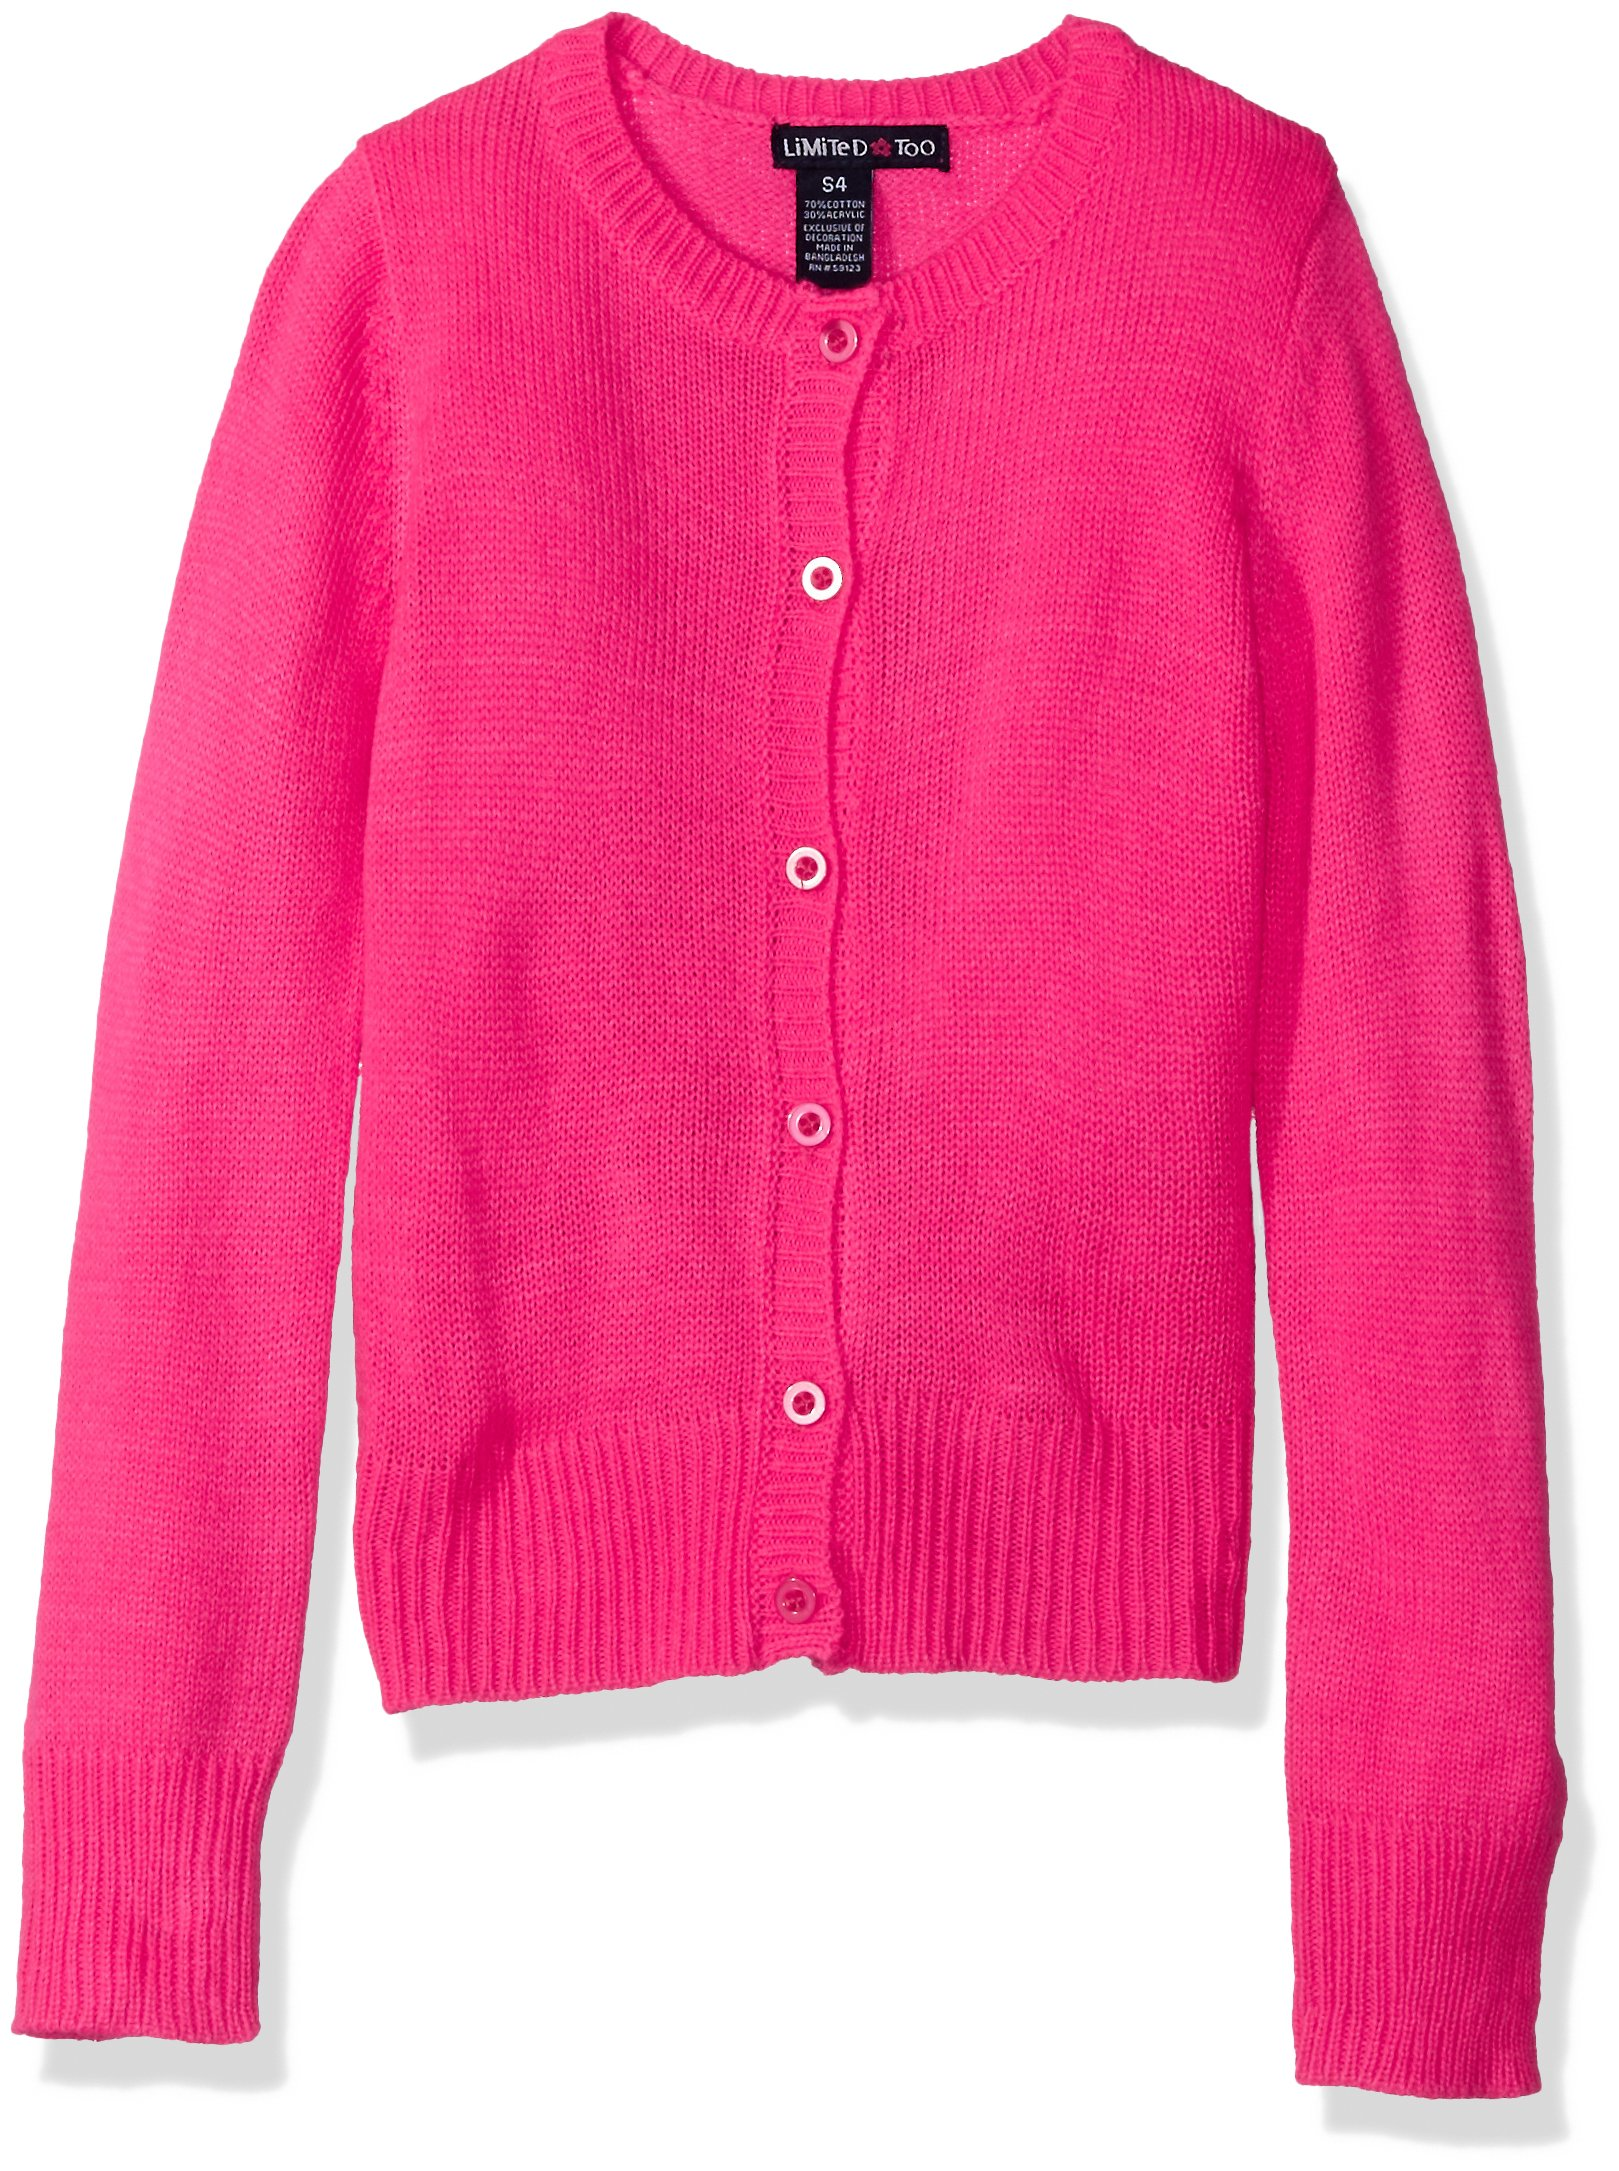 Limited Too Big Girls' Cardigan Sweater, Neon Hot Pink, Large 14/16